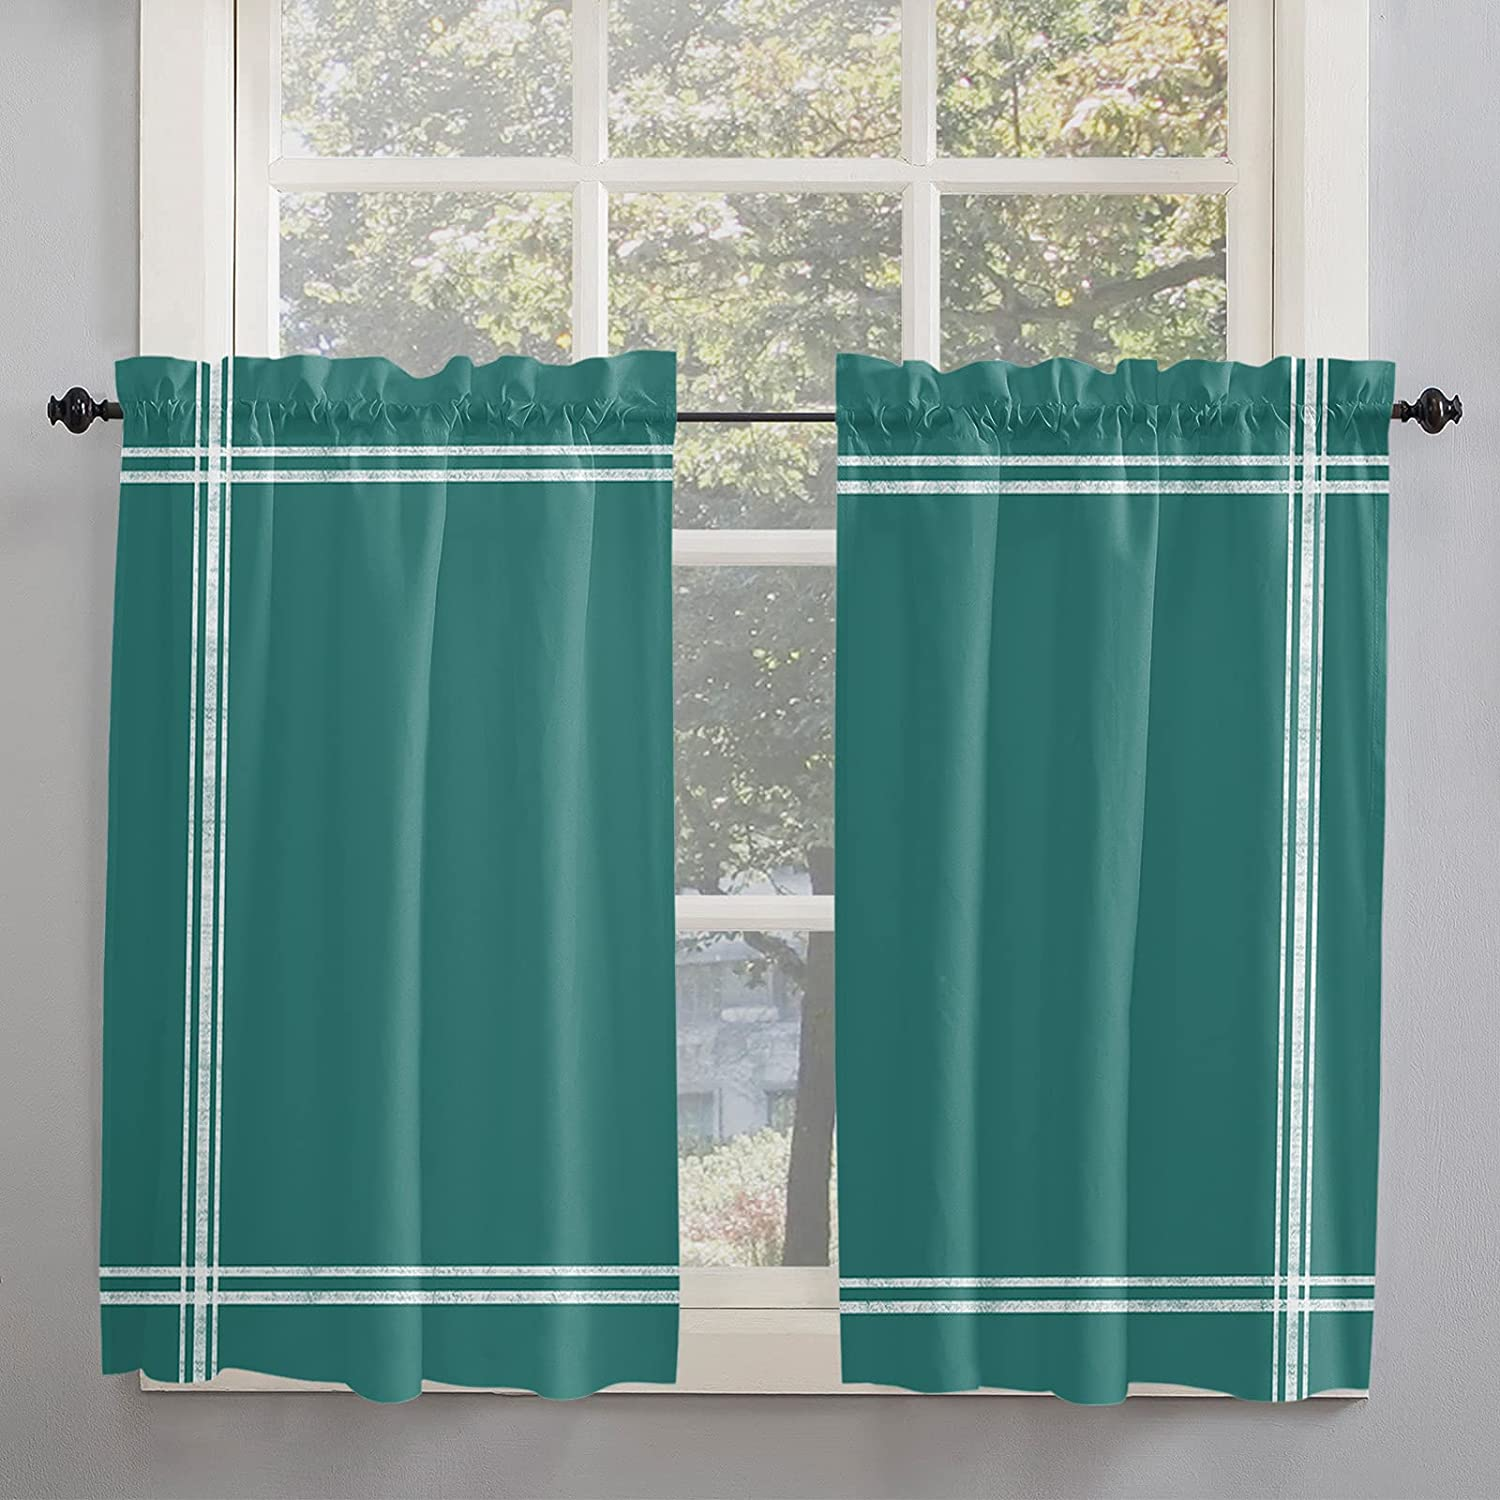 Minimalist Solid Color Kitchen specialty shop Branded goods Curtains Inch for Windo Length 45